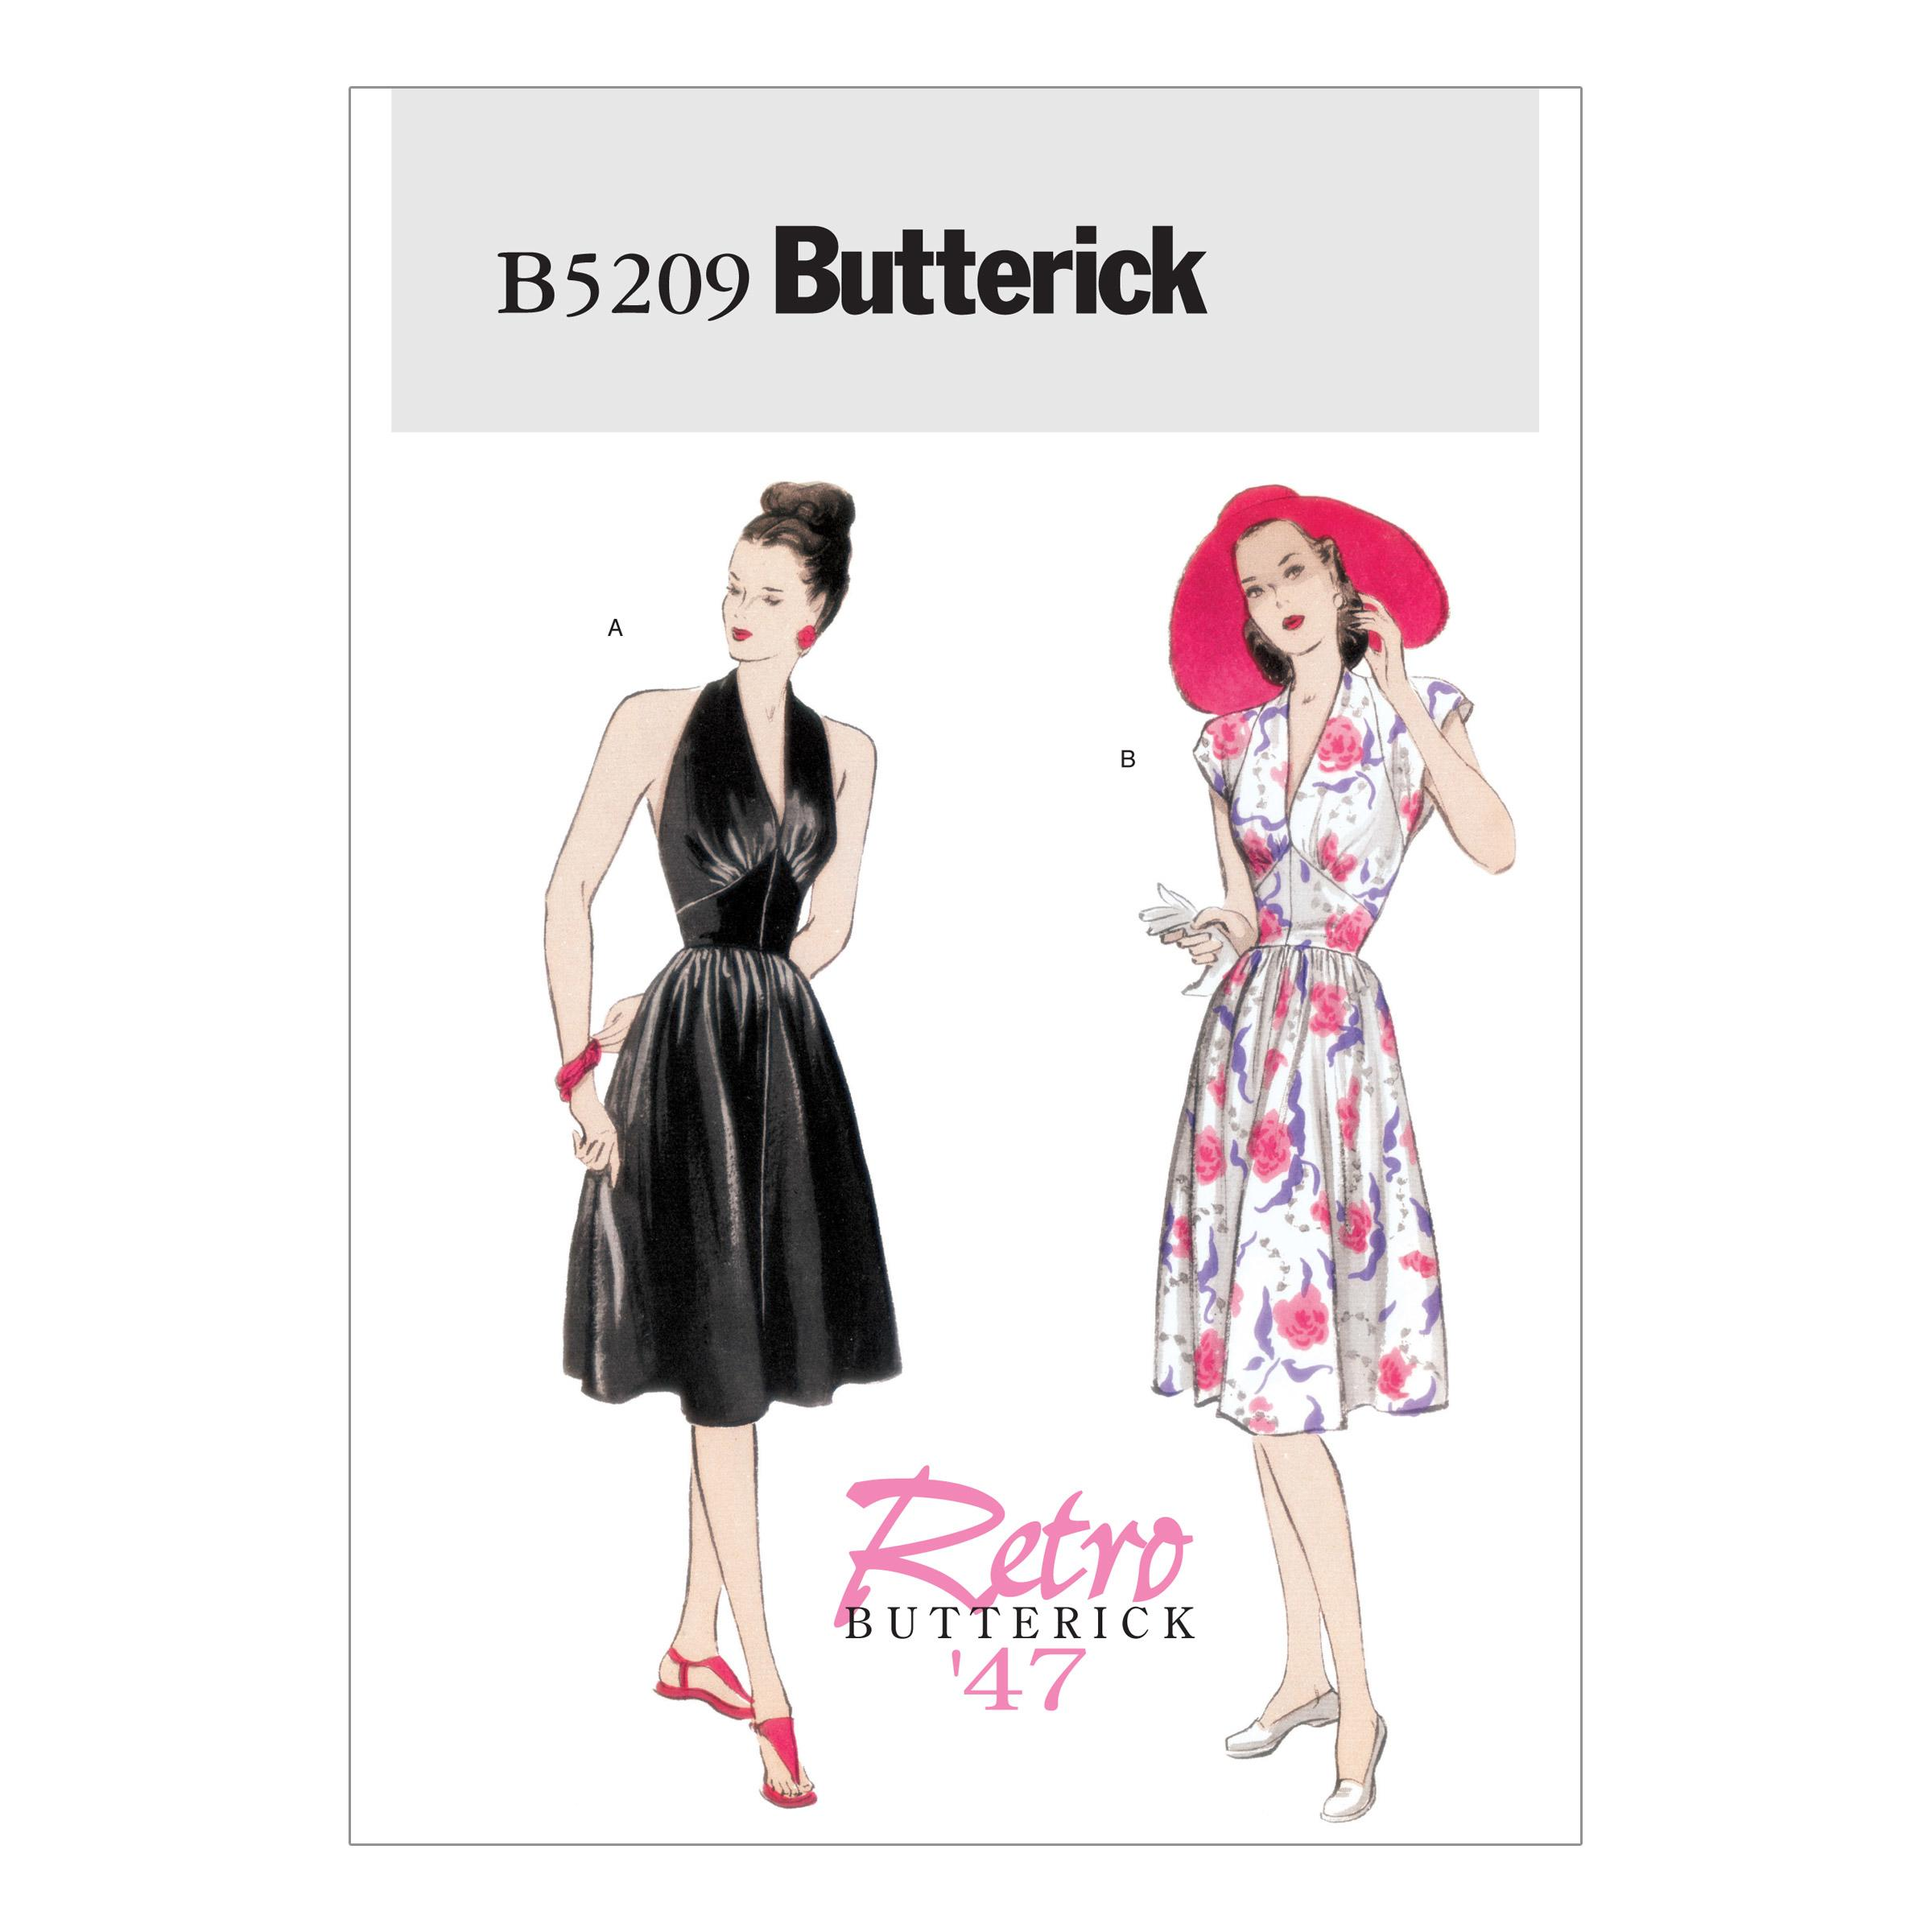 Butterick B5209 Misses' Dress